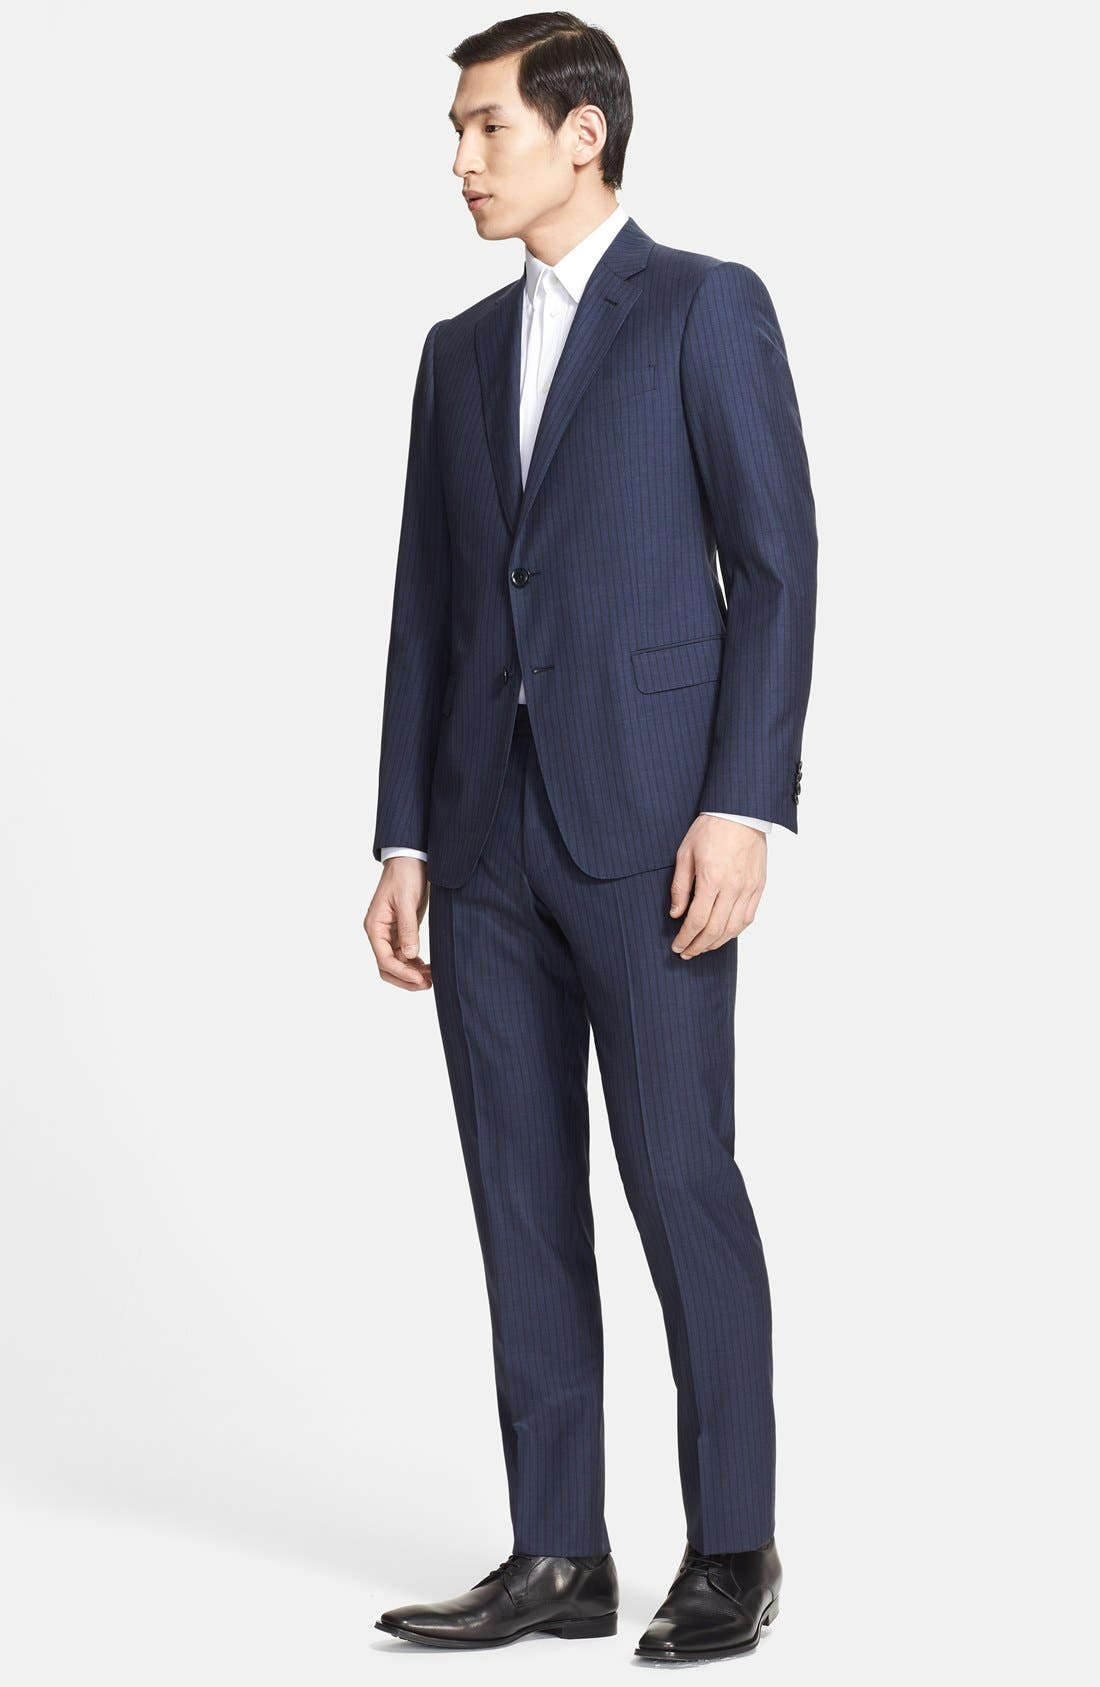 Main Image - Armani Collezioni 'Sartorial' Pinstripe Wool Blend Suit